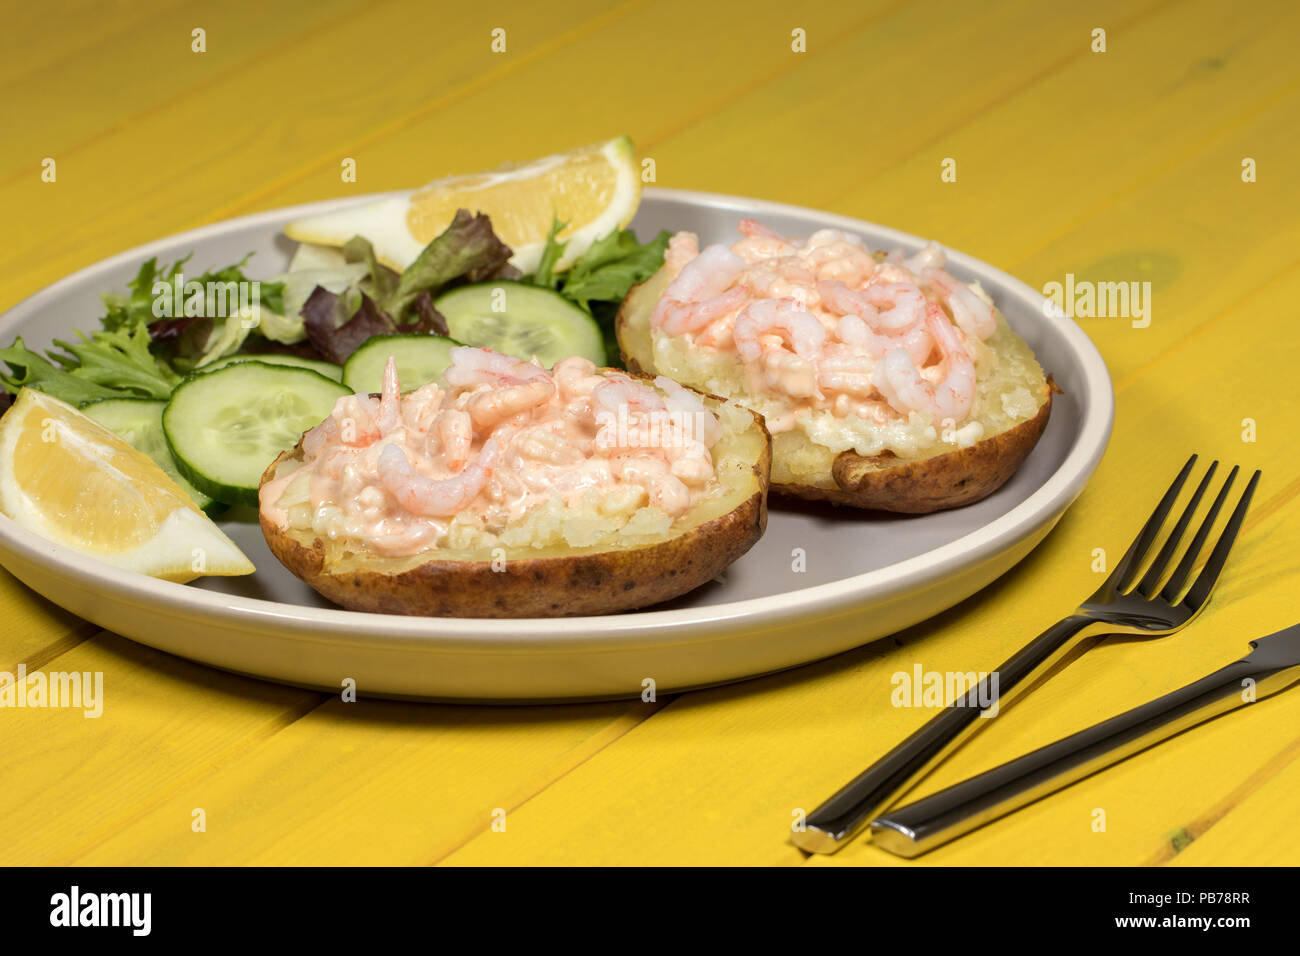 Classic healthy slimming food. Prawn on jacket potato with lettuce leaf salad. Nutritional low-calorie seafood meal of prawns in Marie Rose sauce. - Stock Image